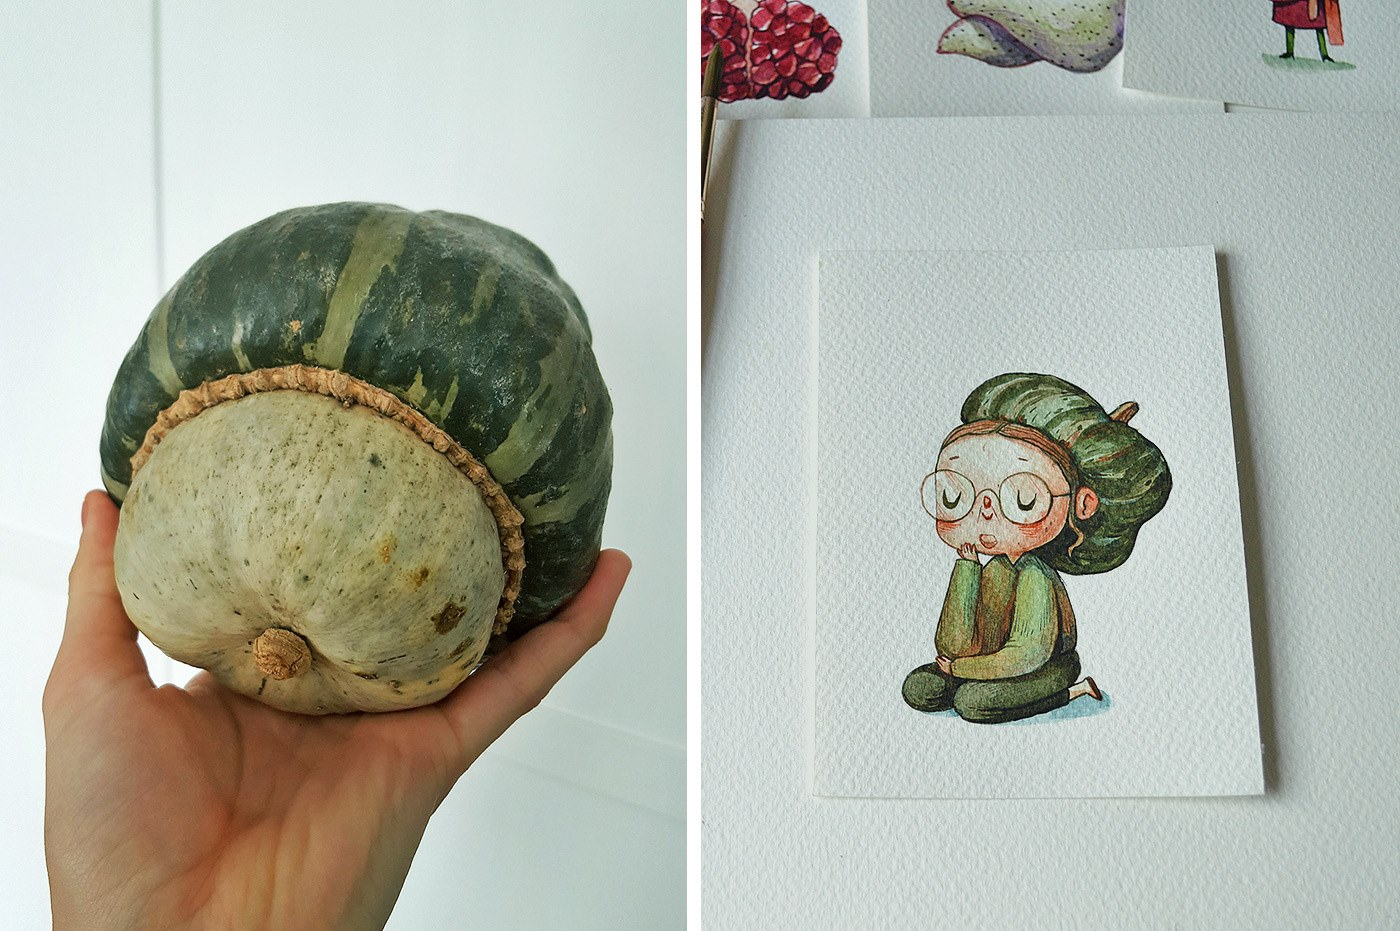 A thoughtful turban squash--a cartoon character drew by Marija Tiurina